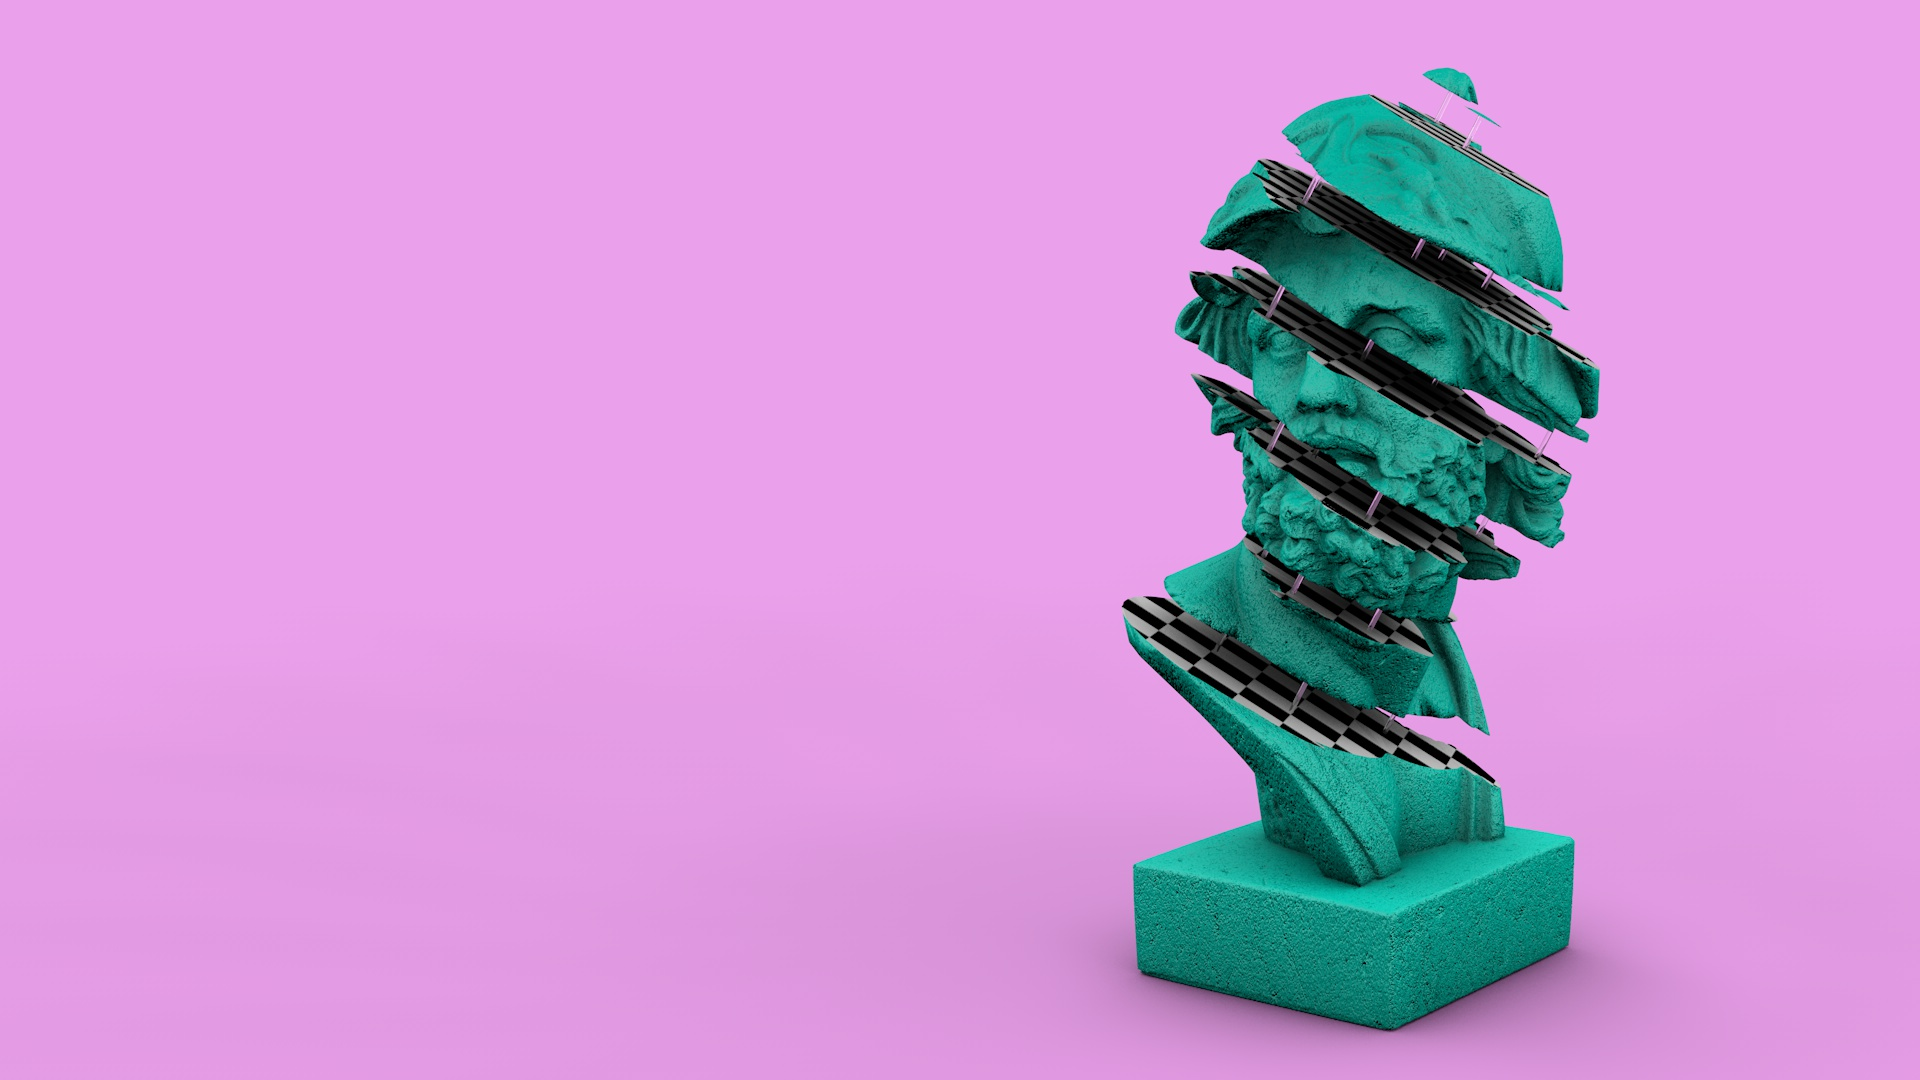 Aesthetic Vaporwave Wallpaper Widescreen at Cool 1920x1080